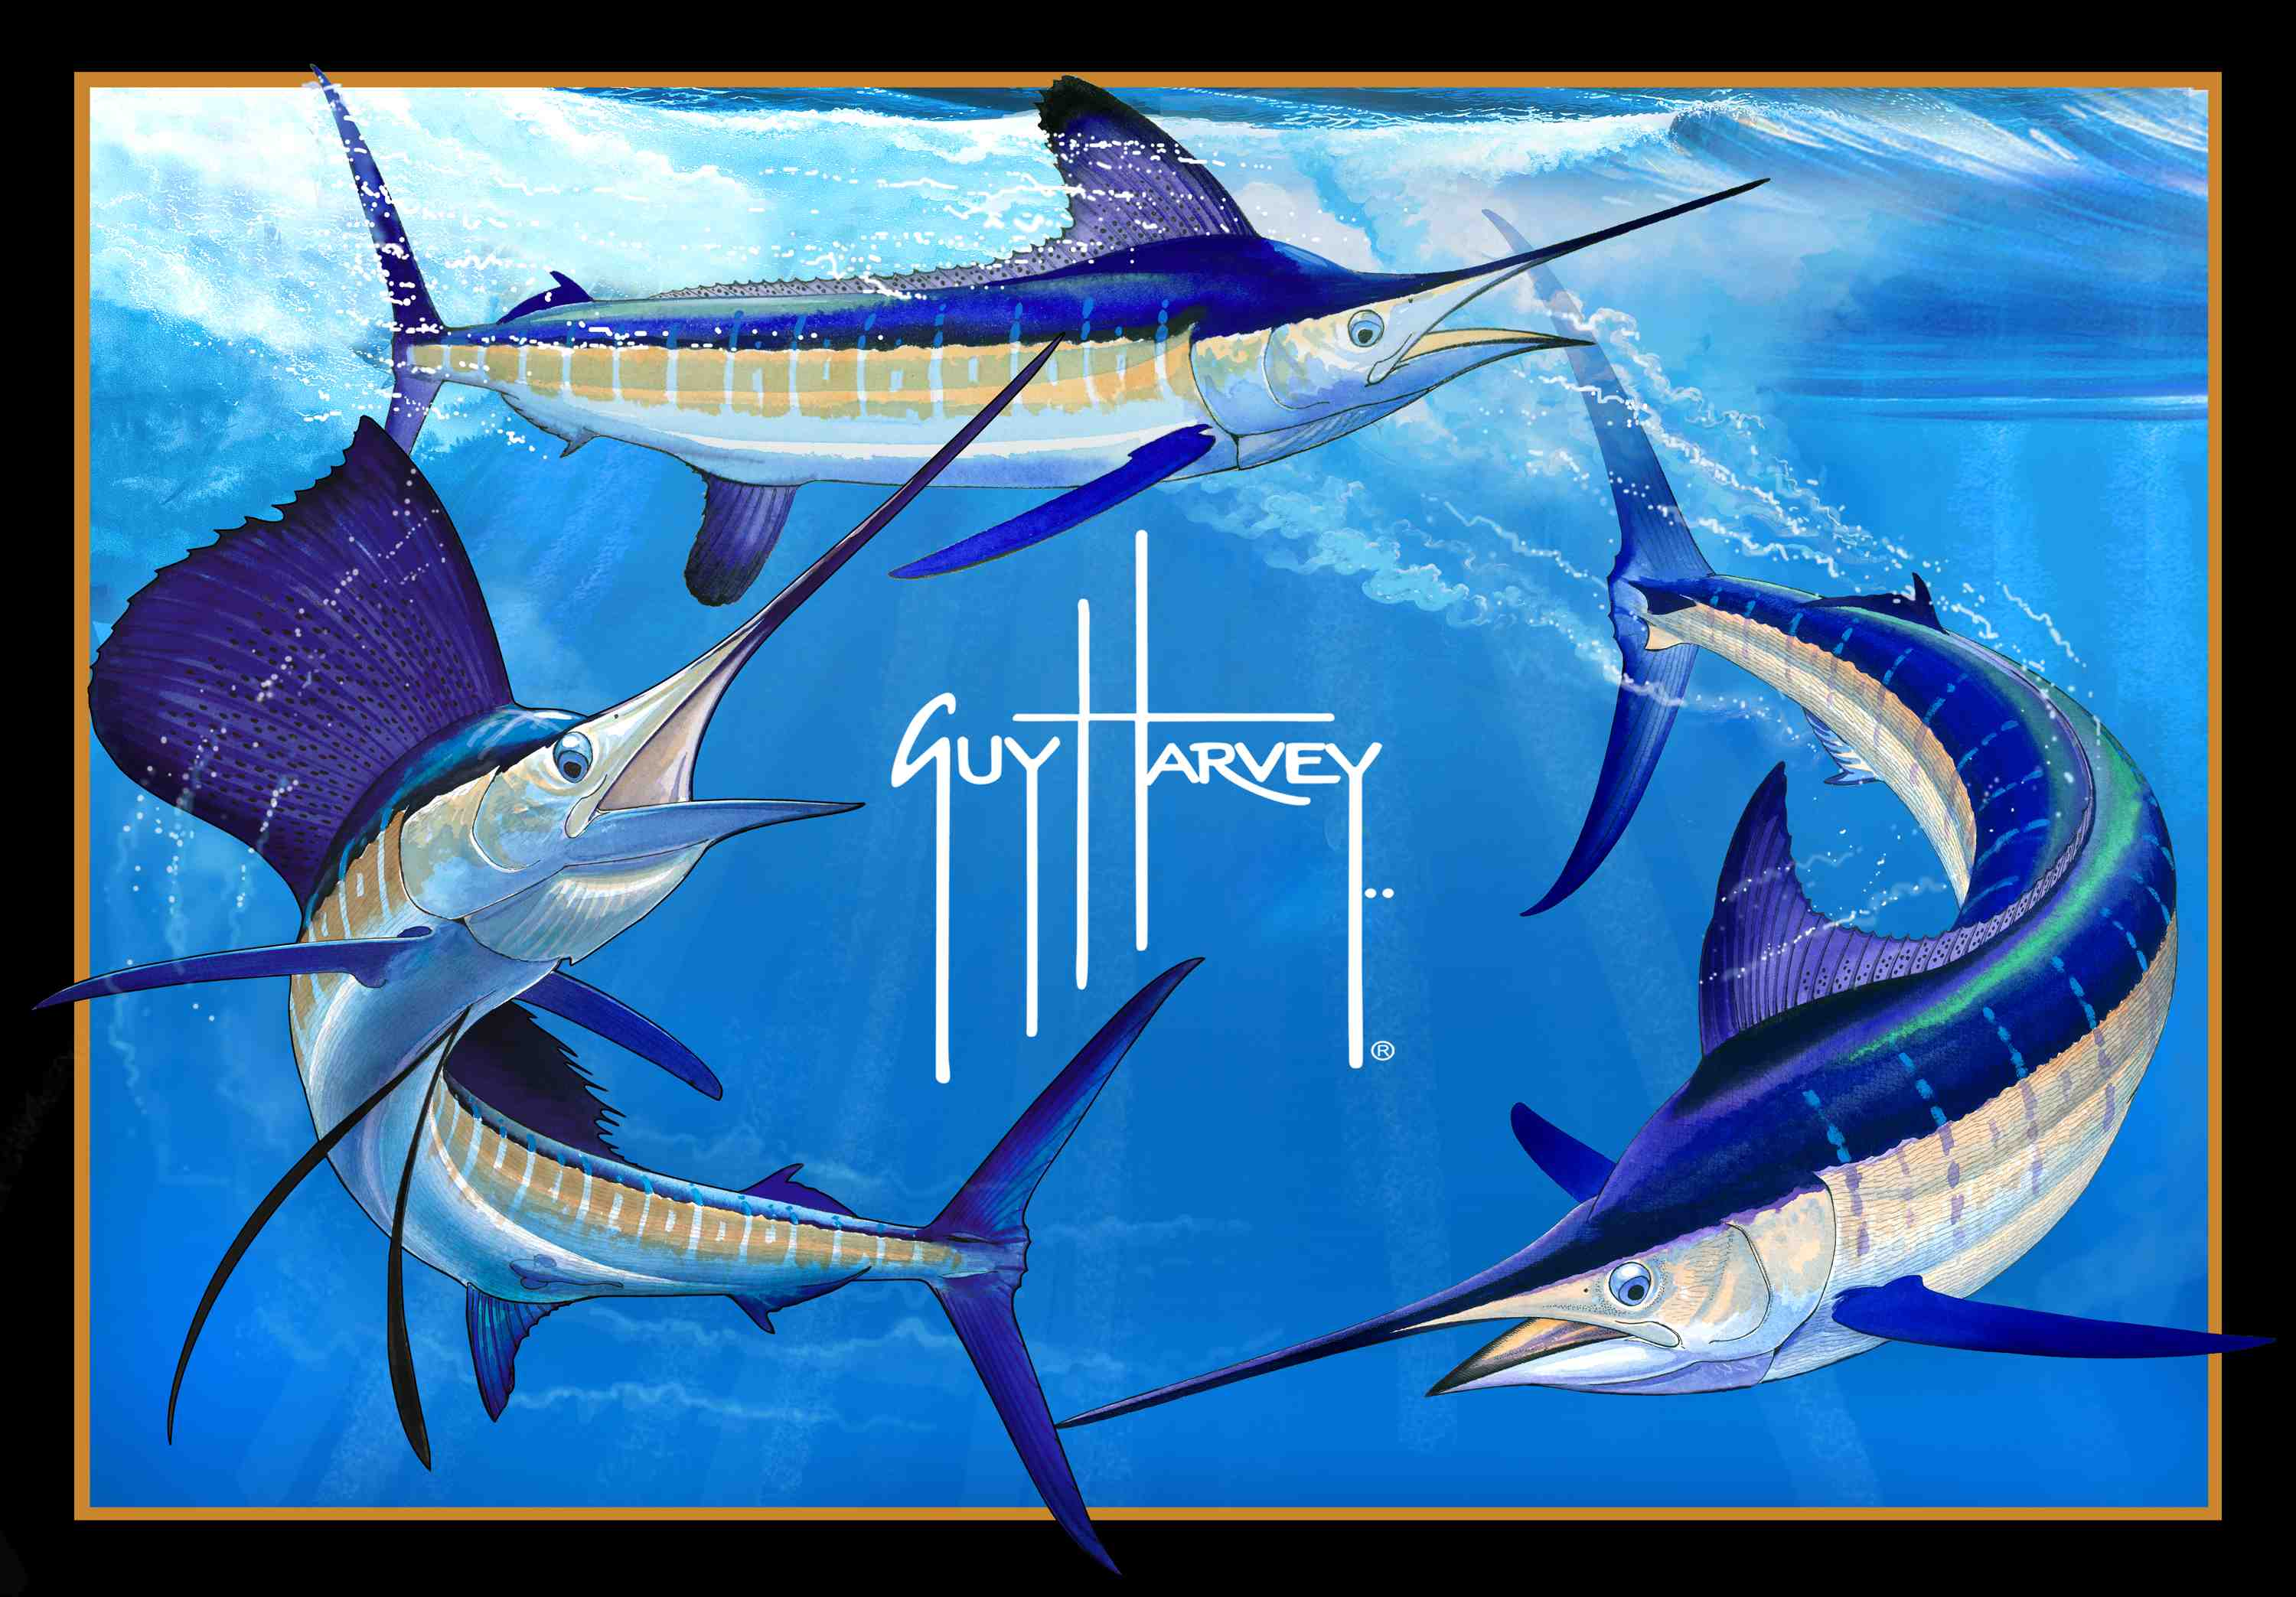 Guy Harvey Milliken Announce Partnership